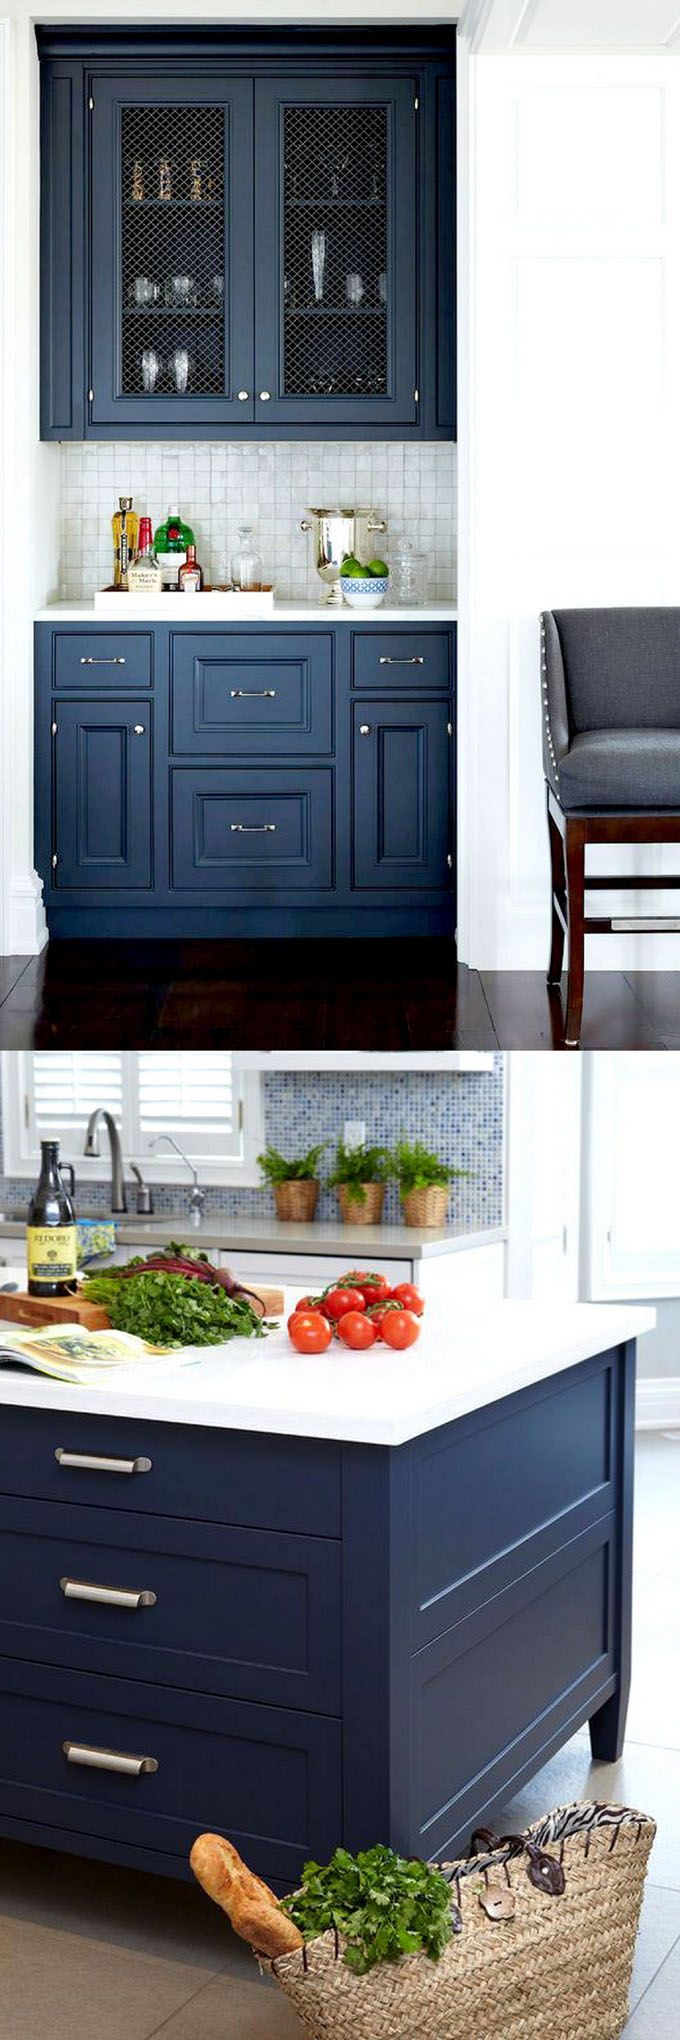 226 best For the Kitchen images on Pinterest | Kitchen ideas, Home ...